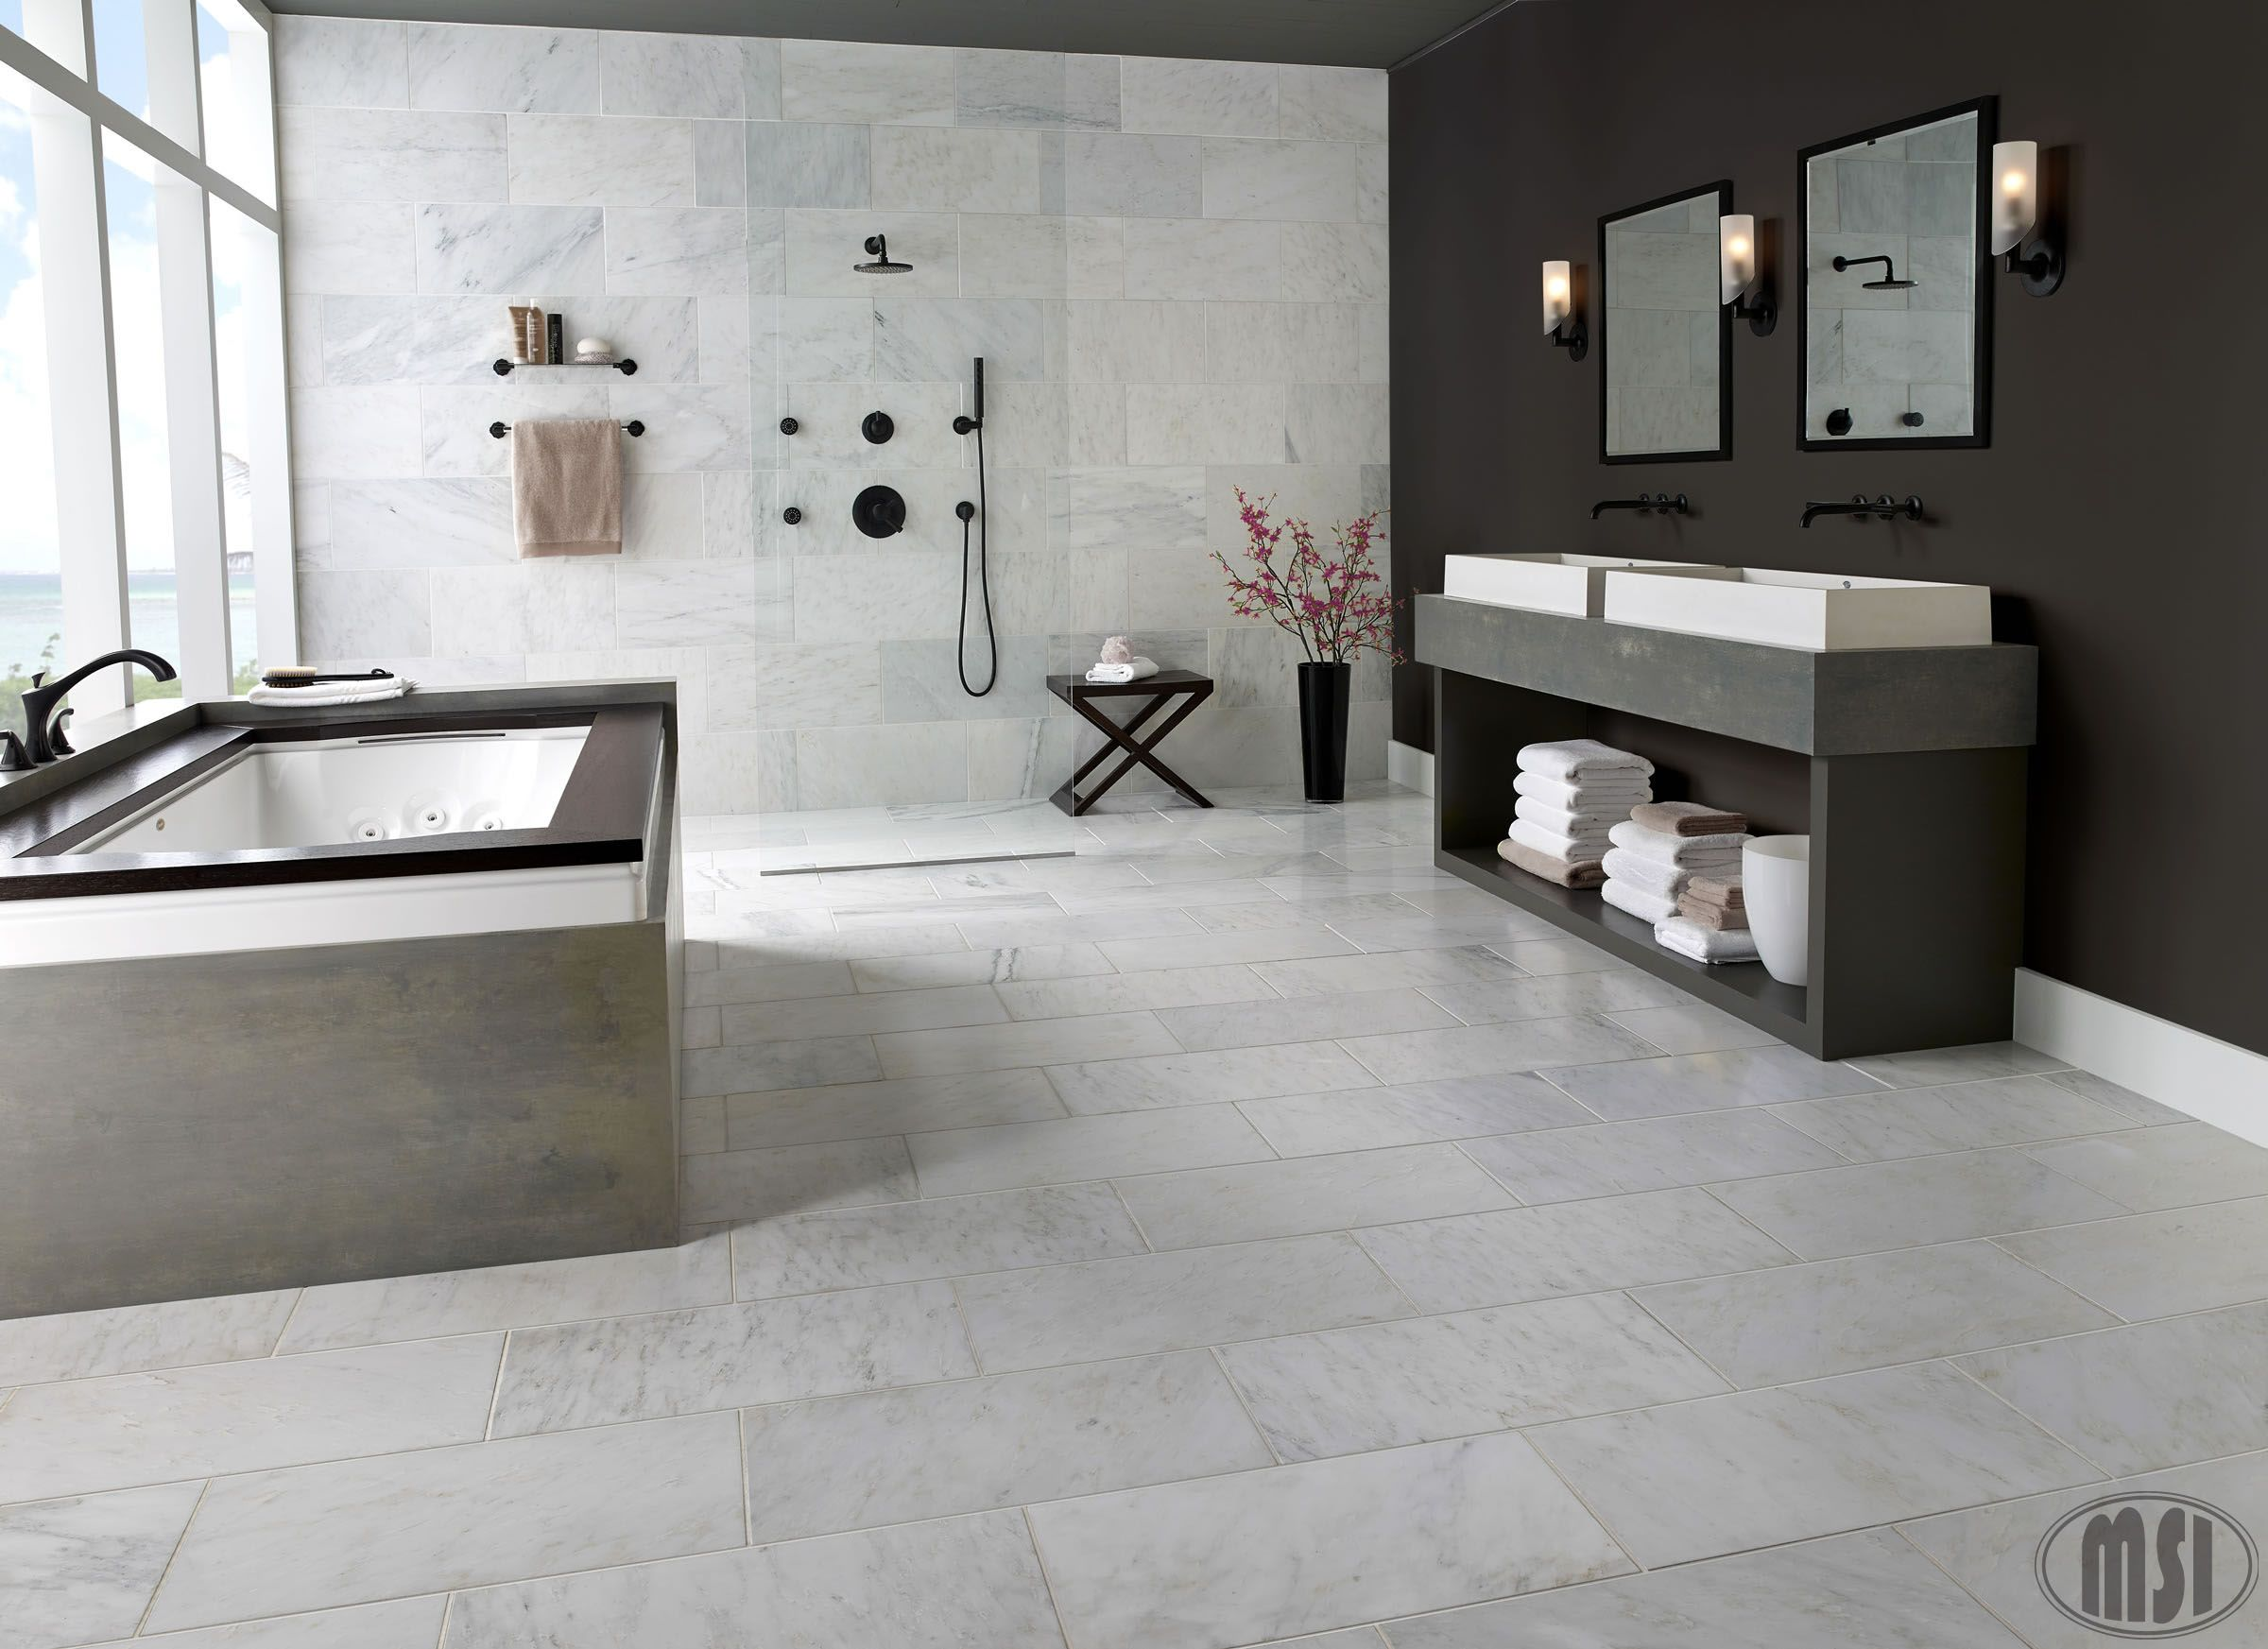 Arabescato Carrara Marble Tile Slabs Prefabricated Countertops White Marble Bathrooms Marble Floor Bathroom Floor Tiles